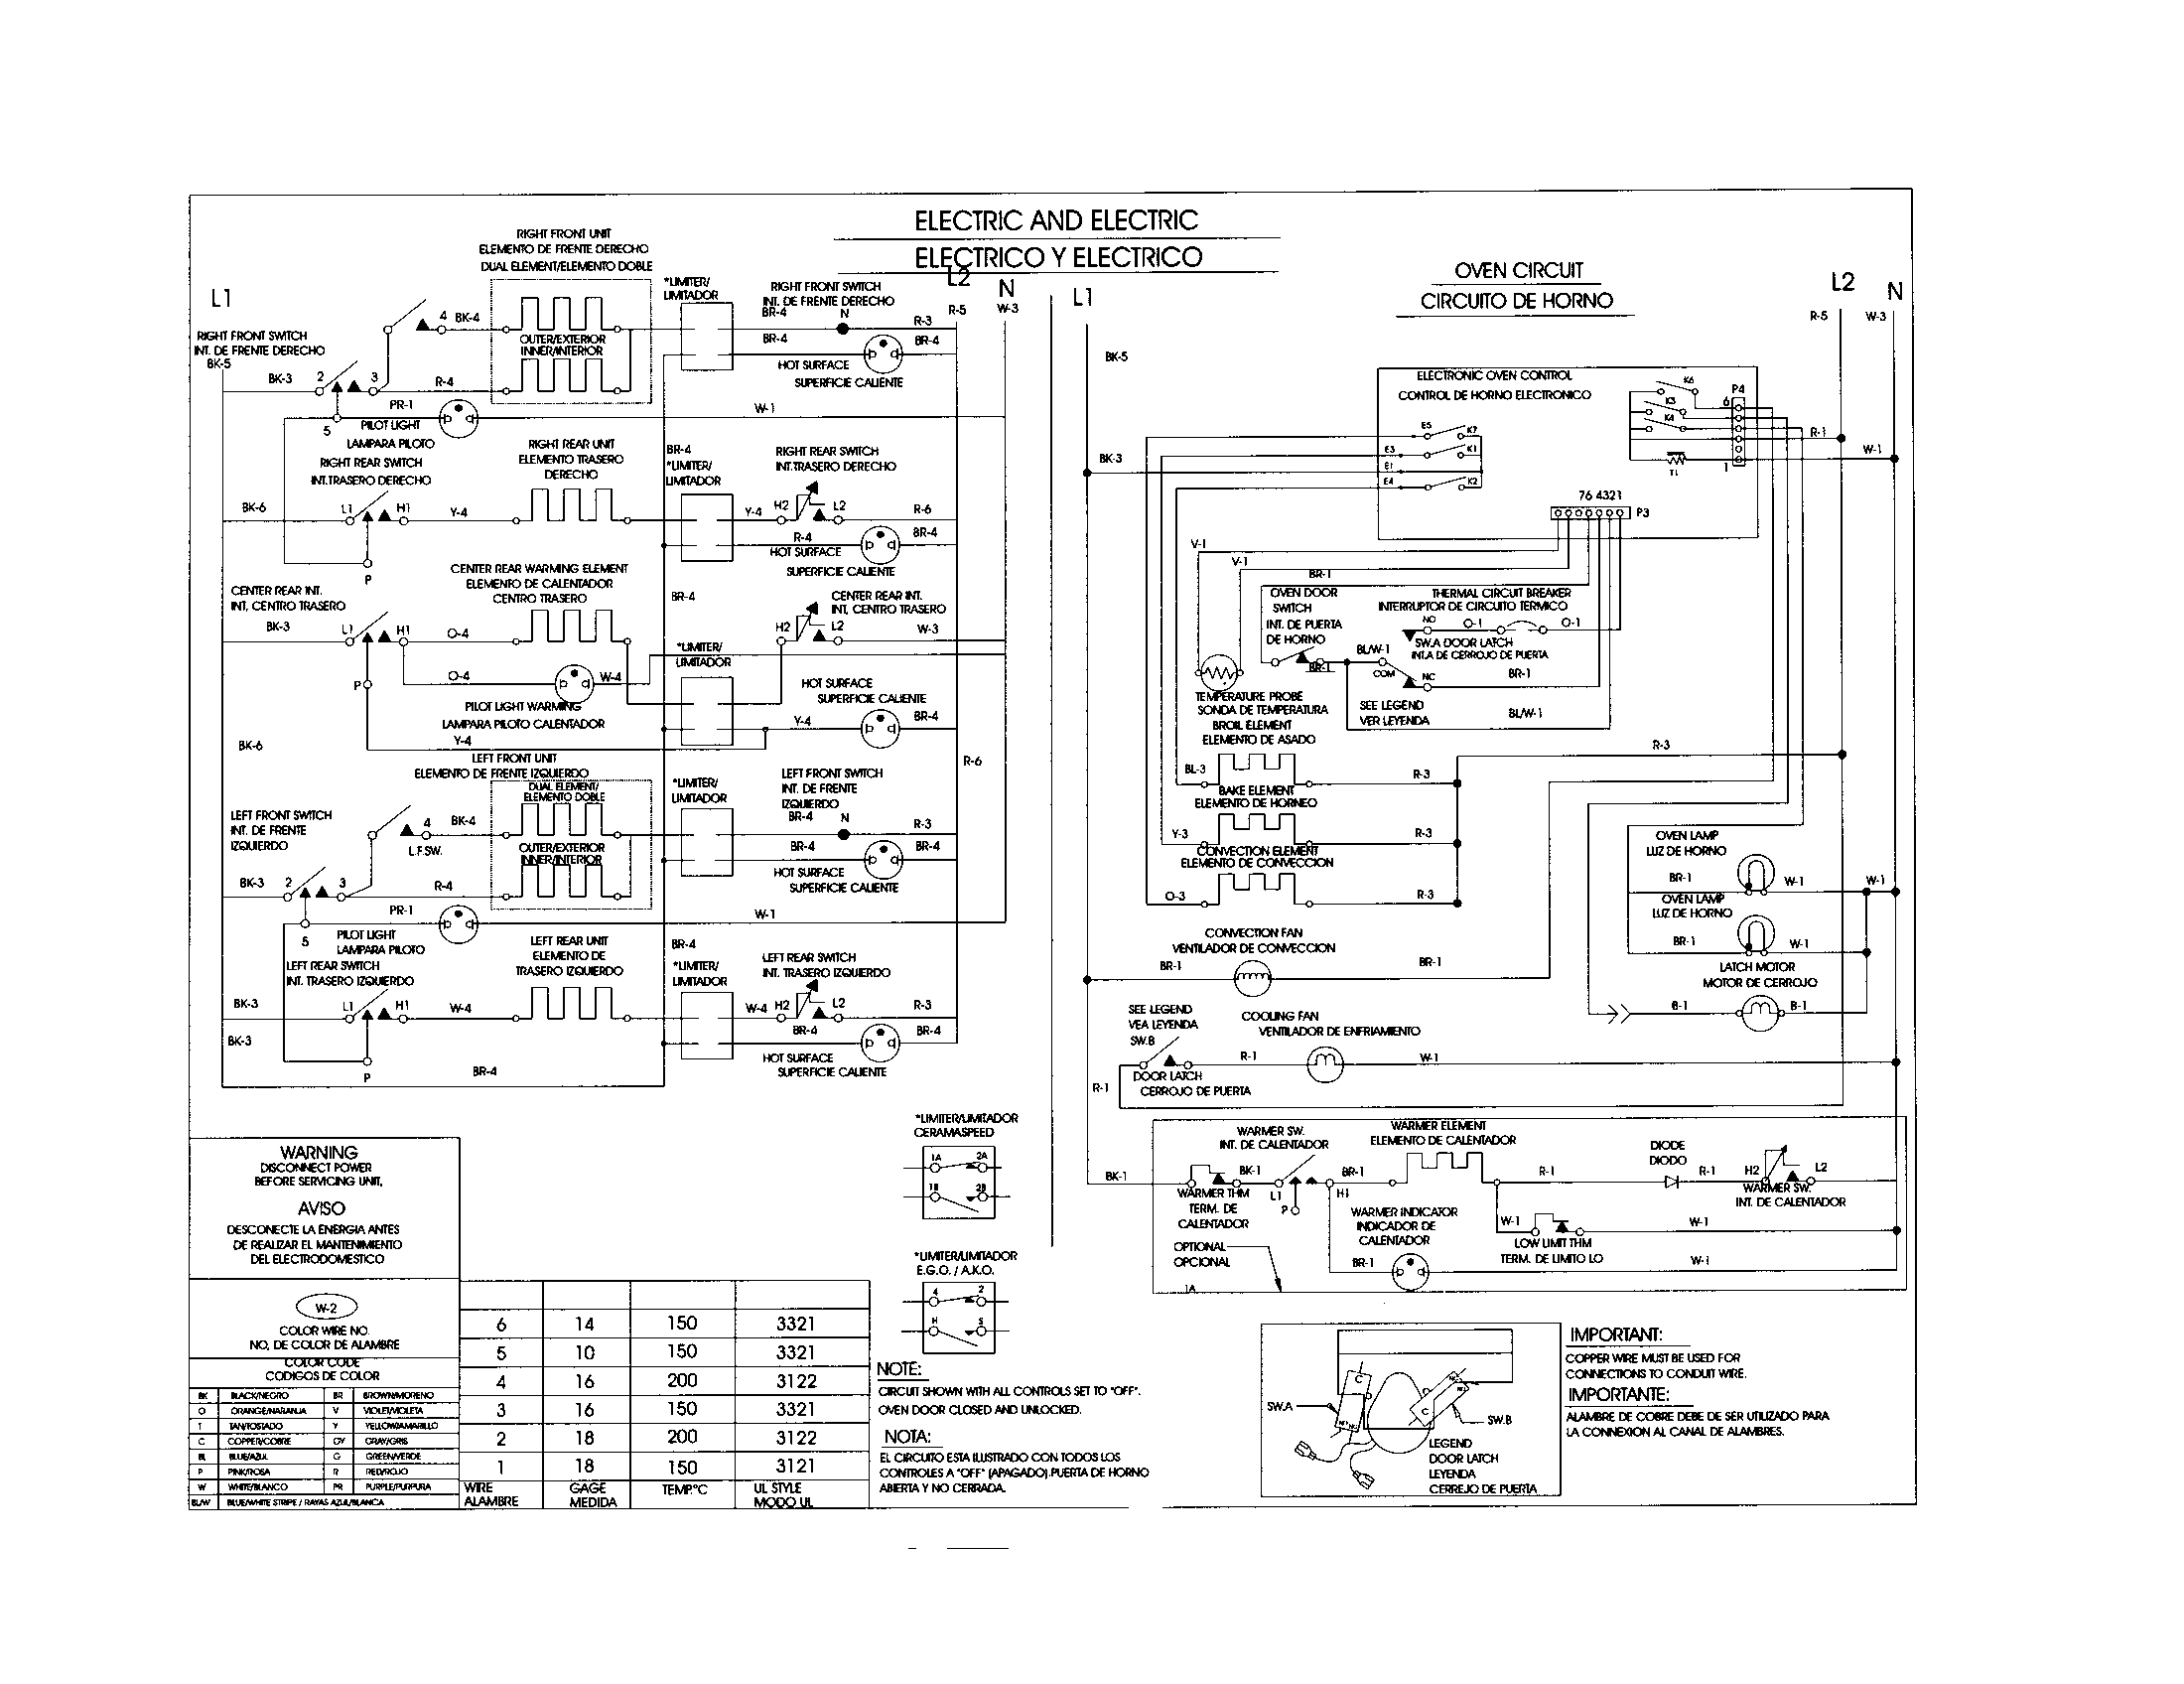 Kenmore Dishwasher Wiring Diagram To Wiring Diagram Parts with regard to Kenmore Elite Dishwasher 665 Parts Diagram